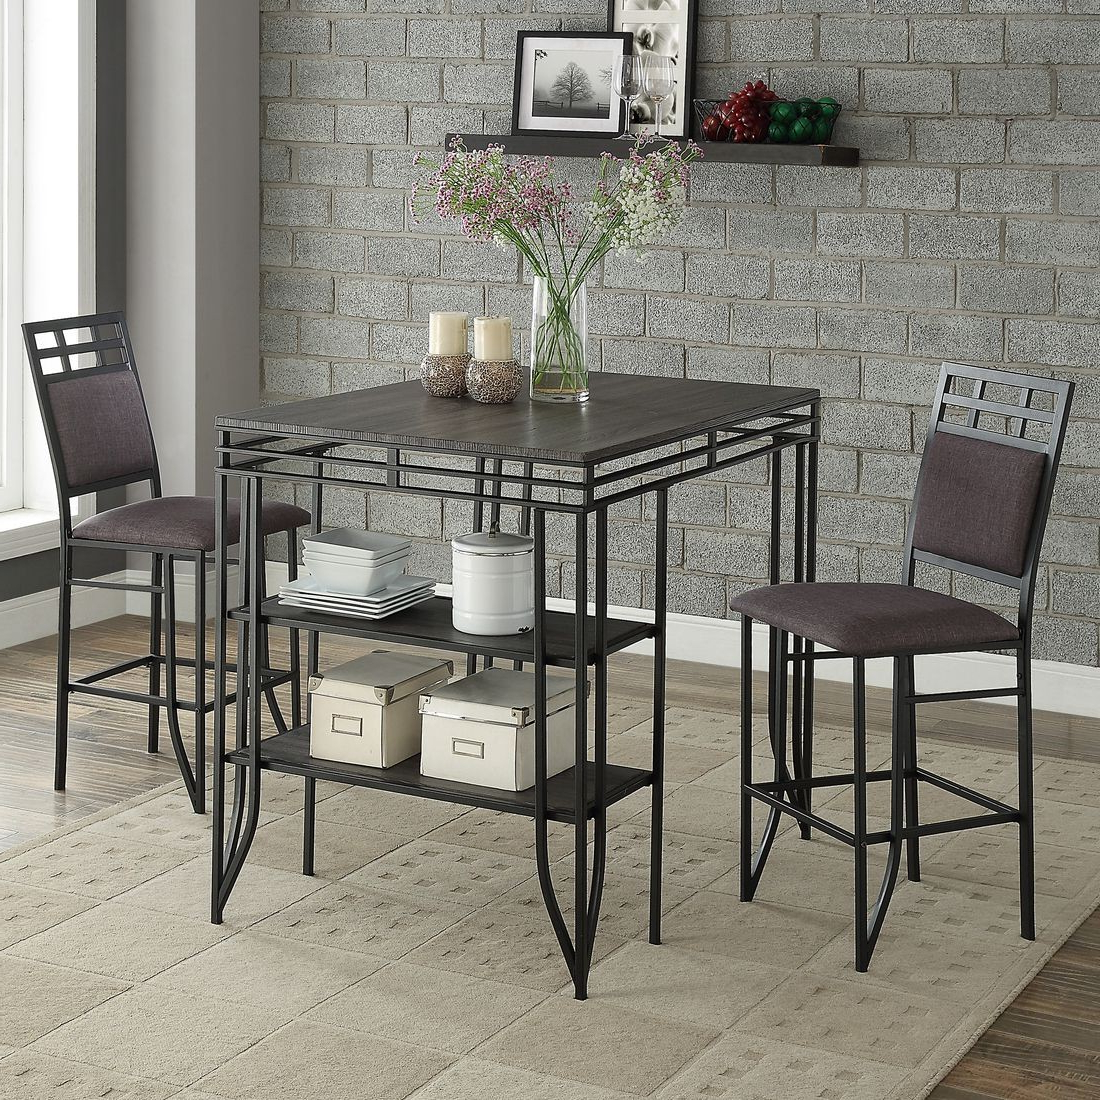 Crown Mark Matrix 3 Piece Counter Height Dining Set In Black Inside Recent 3 Piece Dining Sets (View 5 of 20)